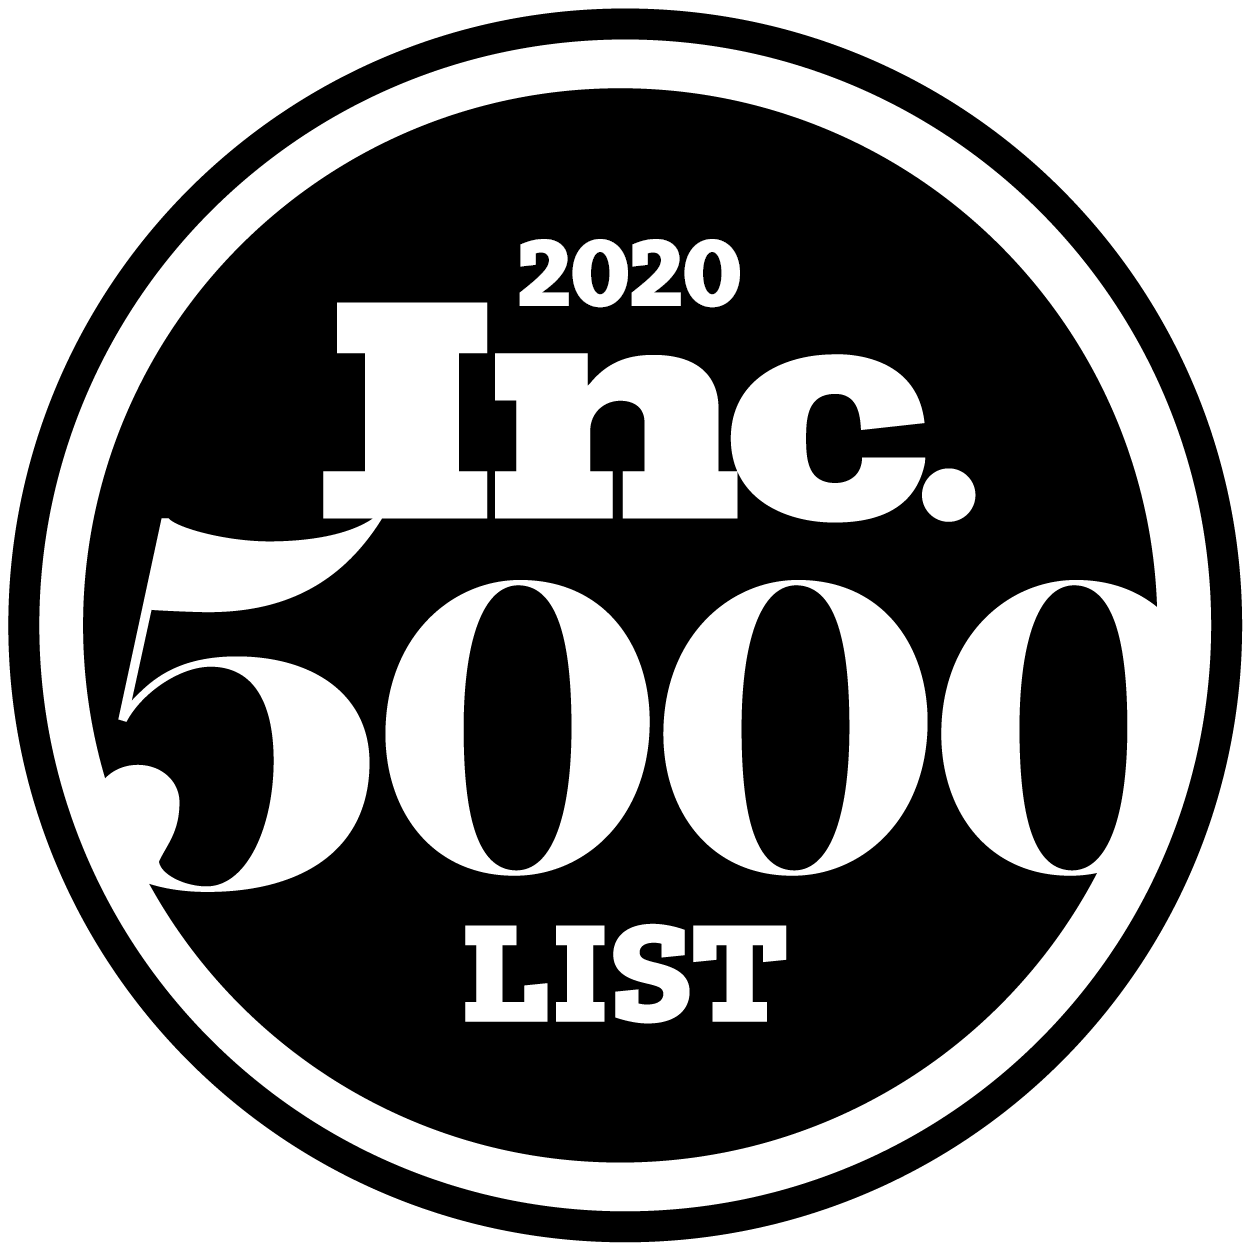 For the second year in a row, we have been named to Inc. magazine's annual Inc. 5000 list, a ranking of the nation's fastest-growing private companies.